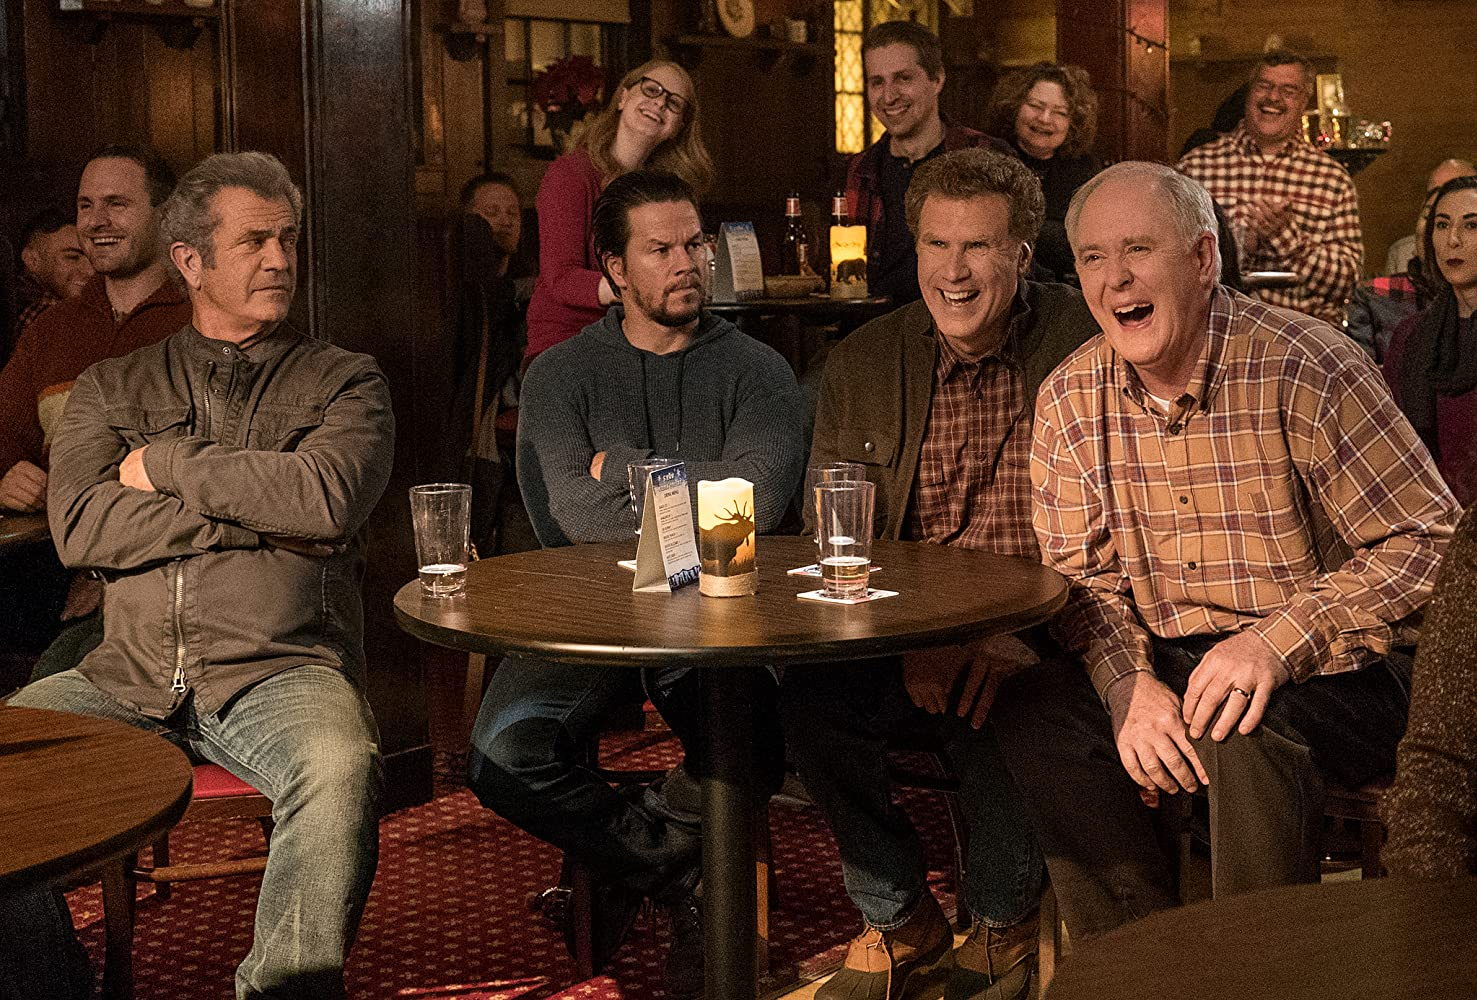 Mel Gibson, Mark Wahlberg, John Lithgow, and Will Ferrell in Daddy's Home 2 (2017)